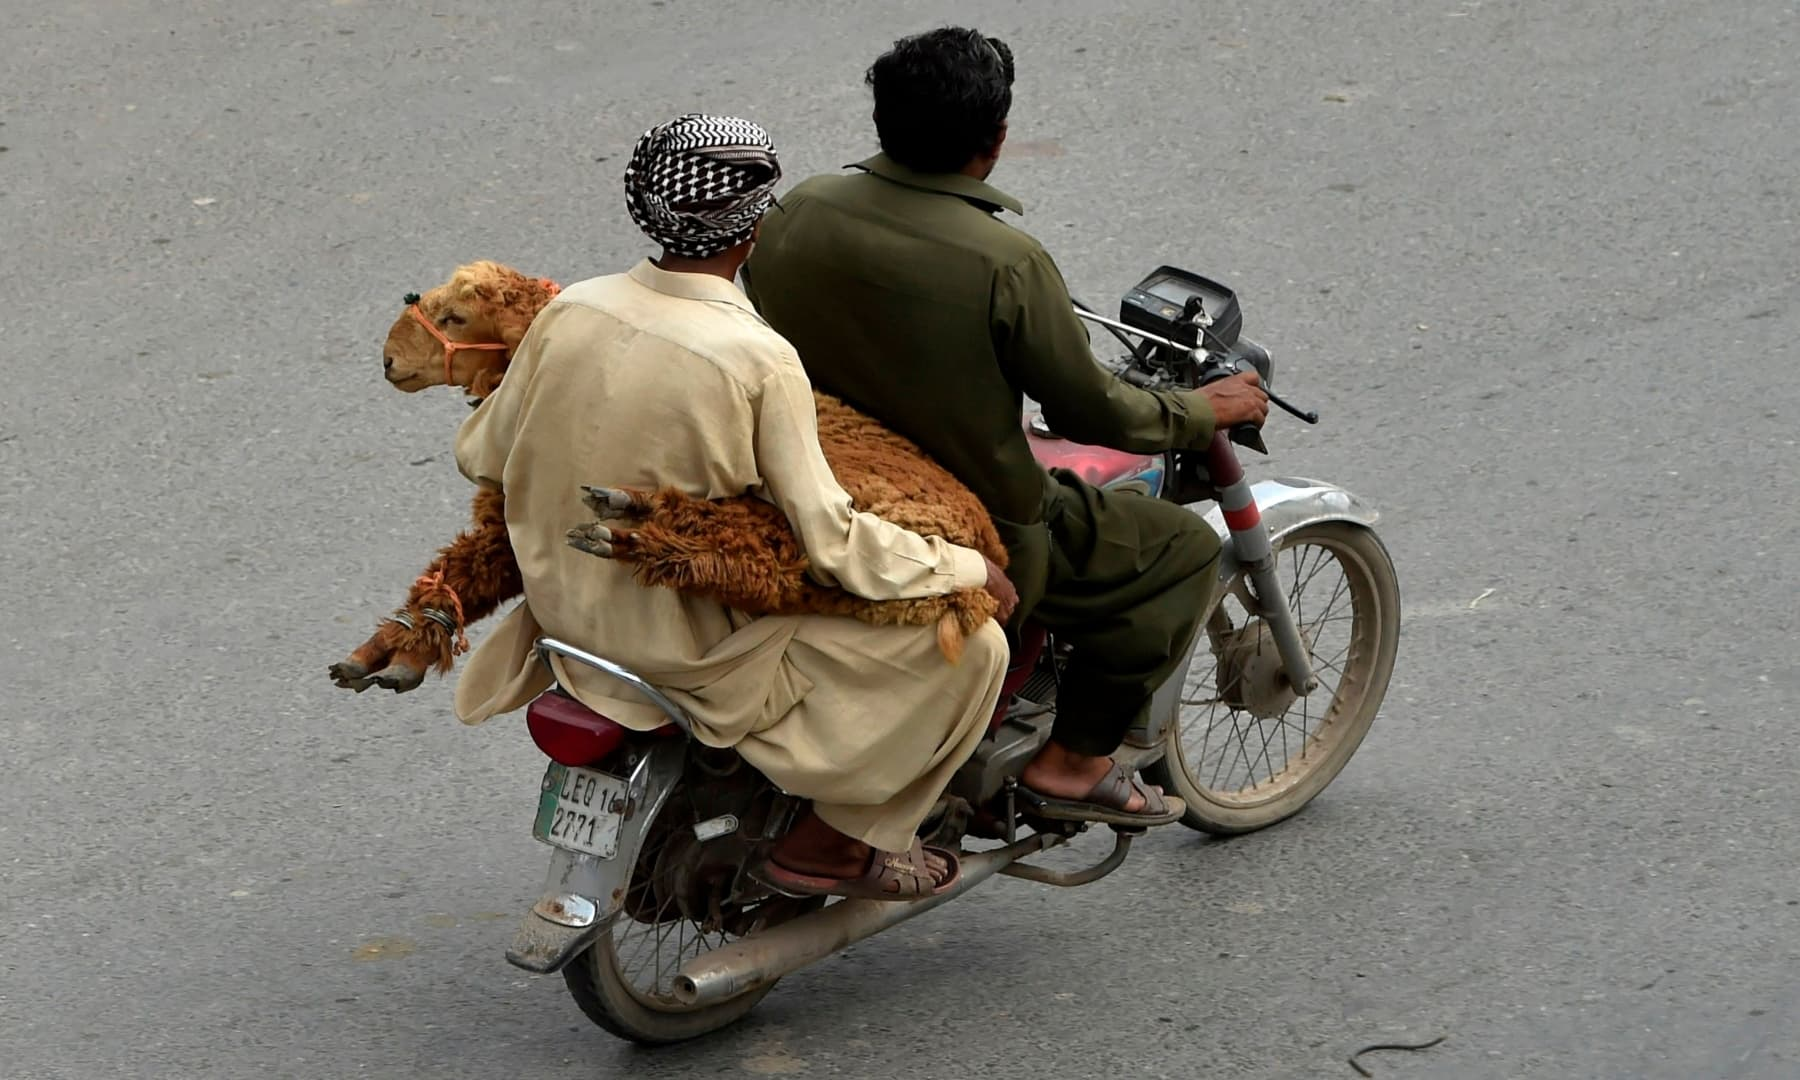 Men transport a sheep on a motorbike after buying from a livestock market for sacrificing on the eve of Eidul Azha, in Lahore on July 31, 2020. — AFP